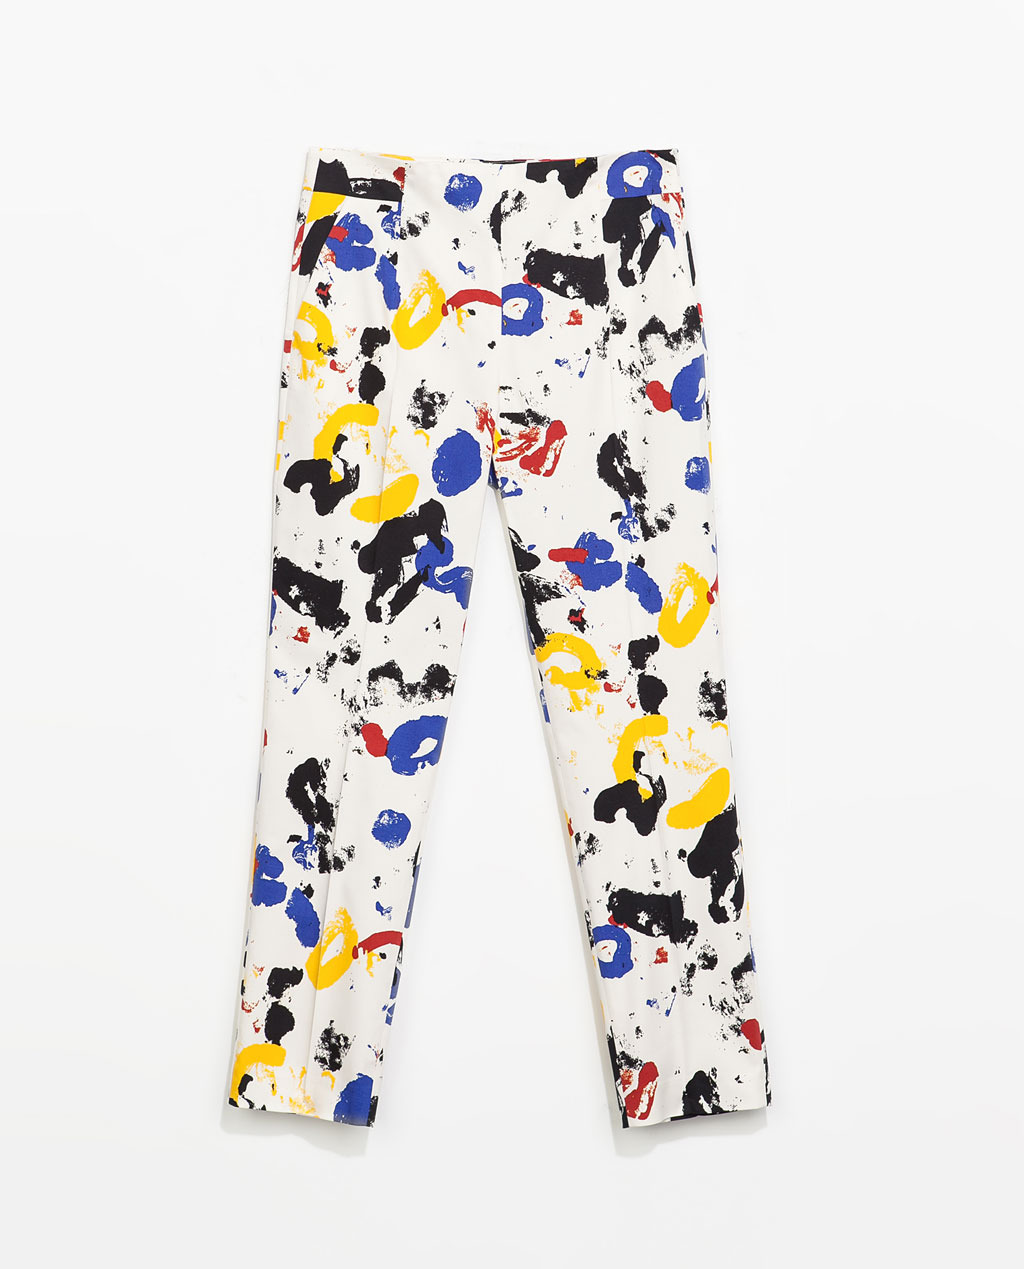 Printed Trousers With Side Zip - style: capri; waist: mid/regular rise; occasions: casual, evening, creative work; length: calf length; fibres: cotton - stretch; predominant colour: multicoloured; texture group: cotton feel fabrics; fit: slim leg; pattern type: fabric; pattern: patterned/print; trends: art-party prints; season: s/s 2014; pattern size: standard (bottom); multicoloured: multicoloured